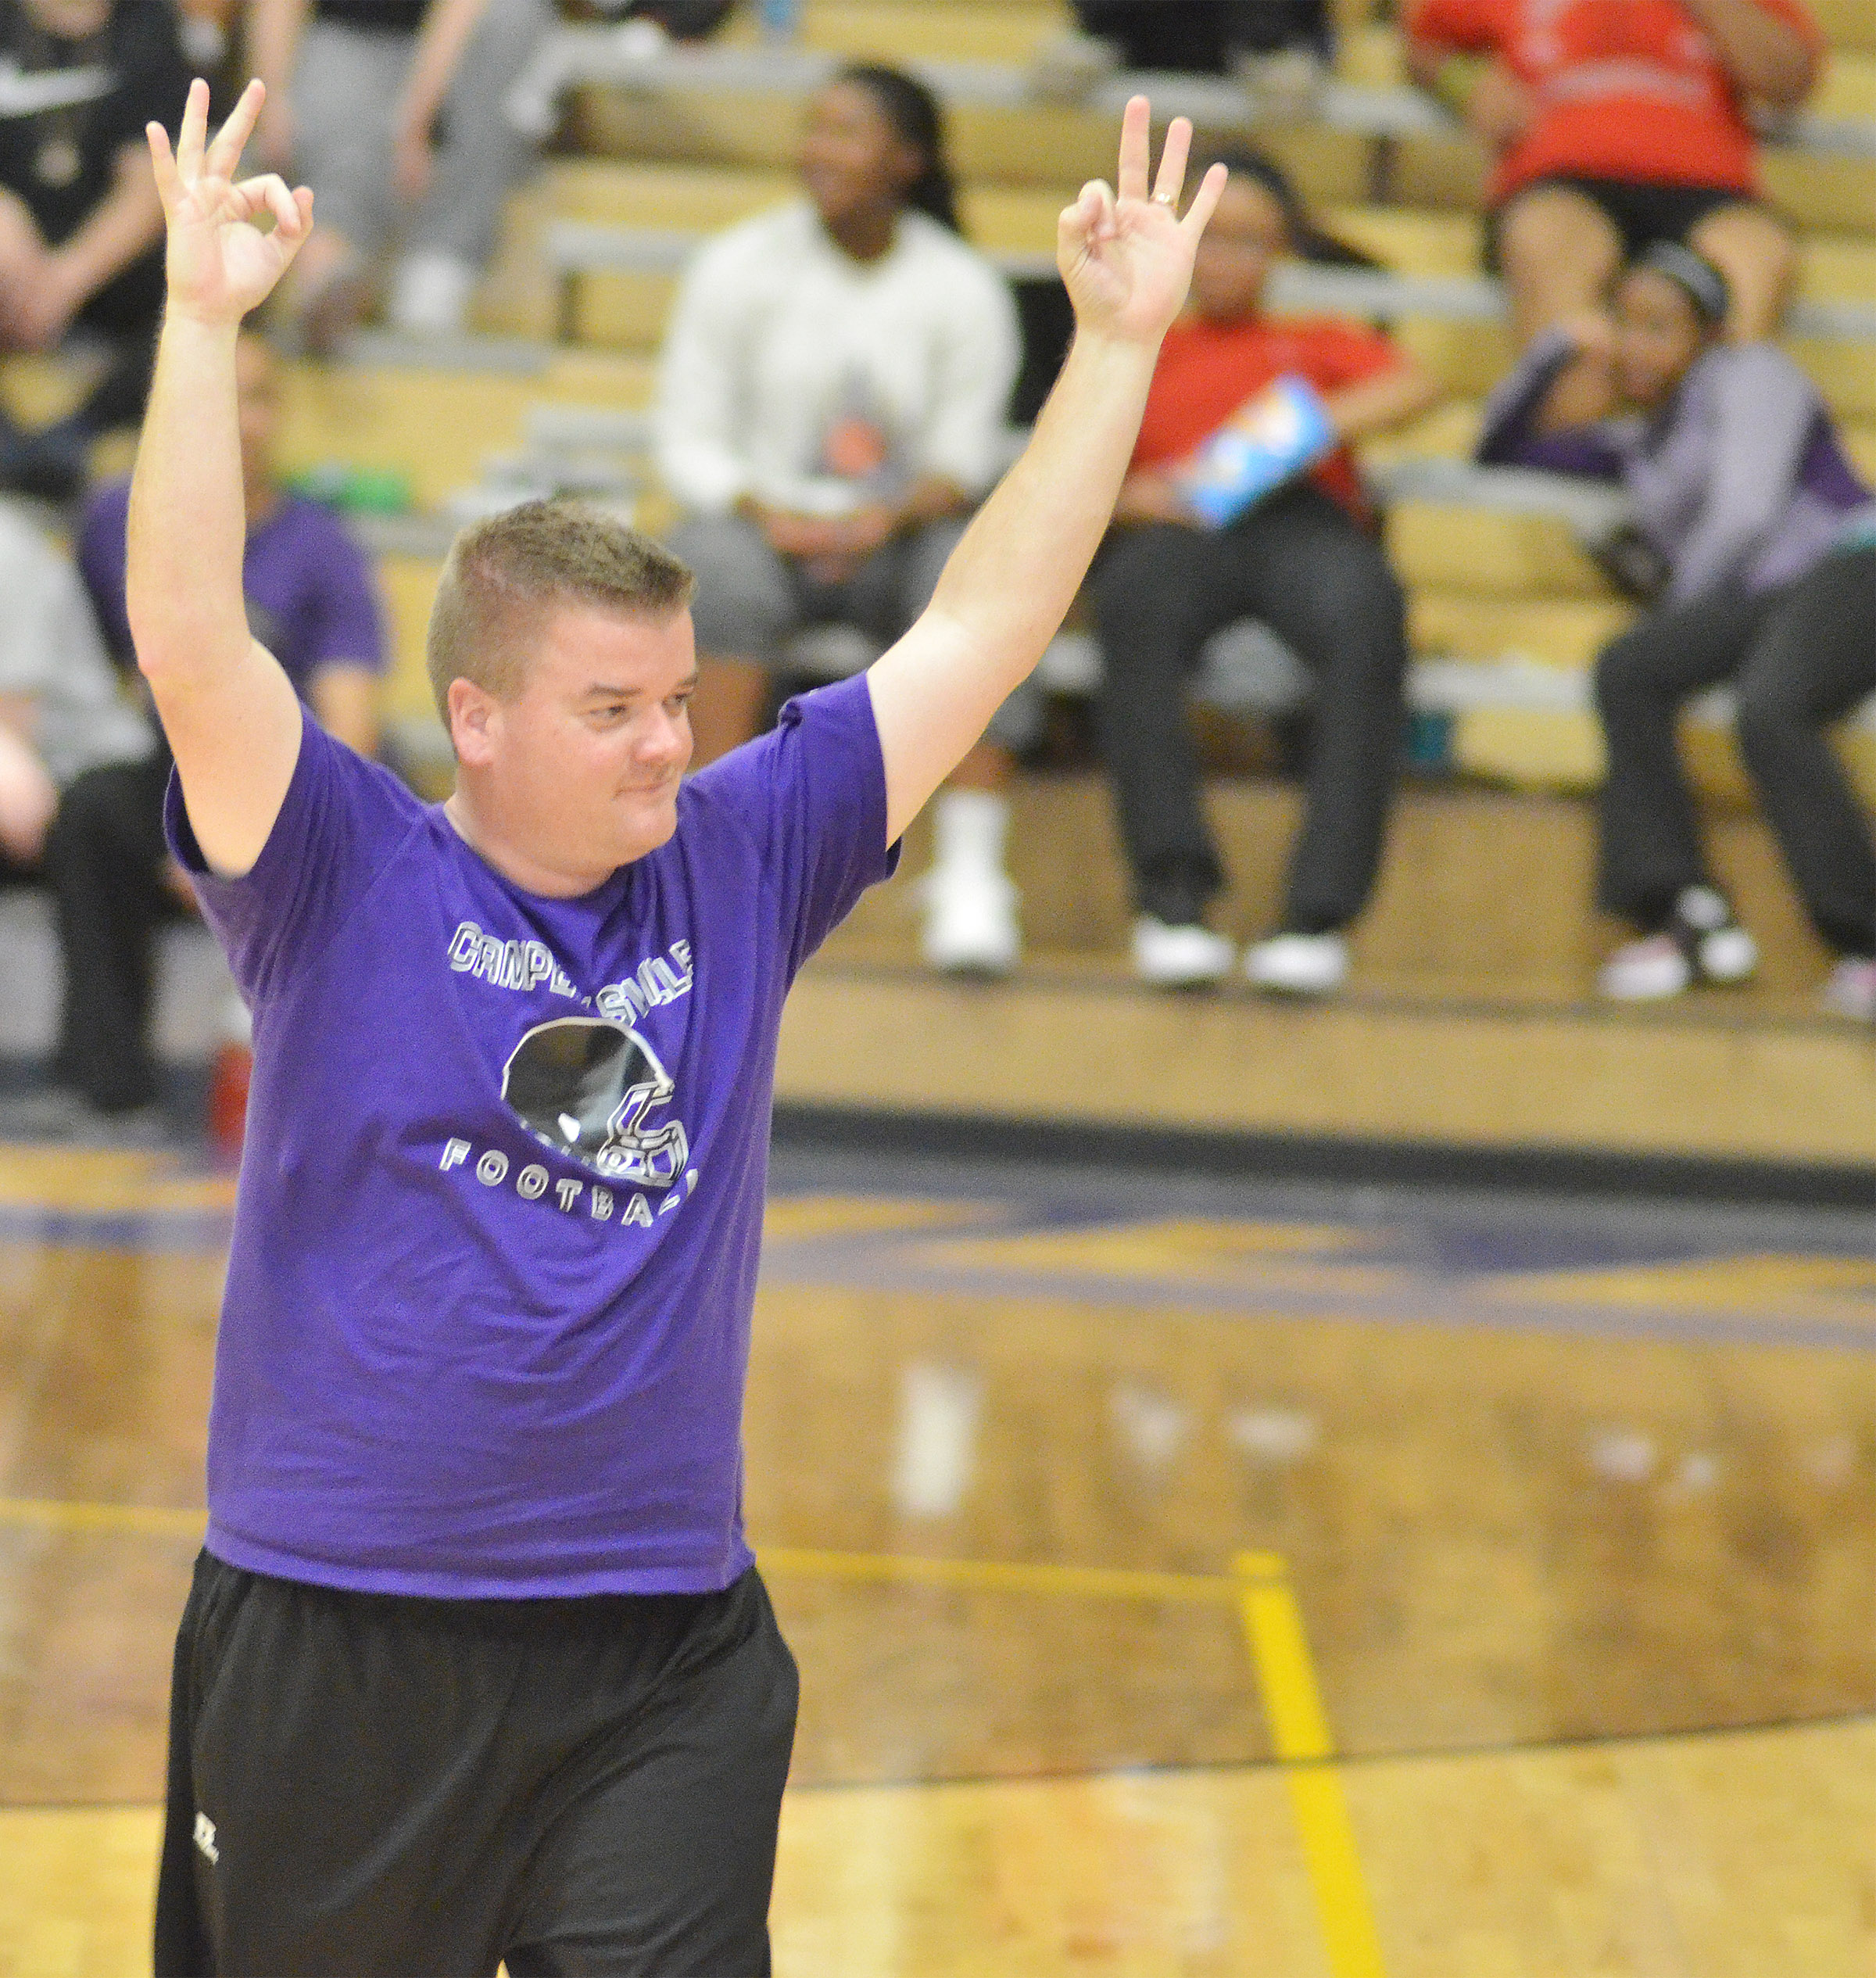 CHS teacher Dale Estes celebrates after his teammate makes a three-point shot.